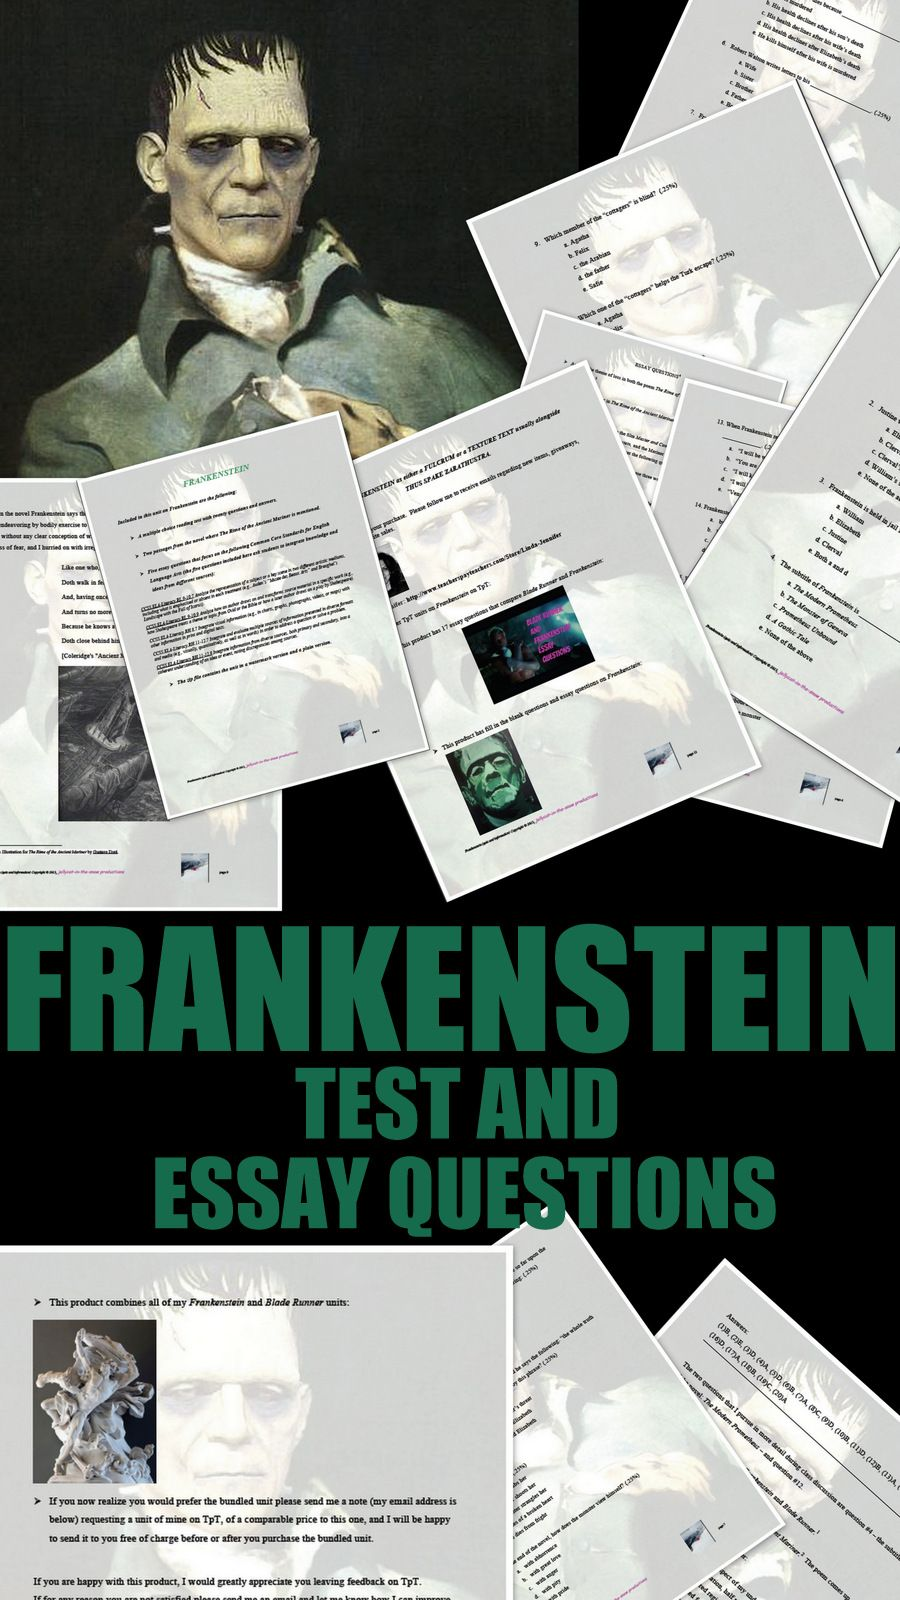 College Vs High School Essay Frankenstein Included Here  Multiple Choice Questions And Answers  Essay  Questions That Focus On The Following Common Core Standards For English  English Class Essay also Modern Science Essay Frankenstein Included Here  Multiple Choice Questions And  How To Write An Essay With A Thesis